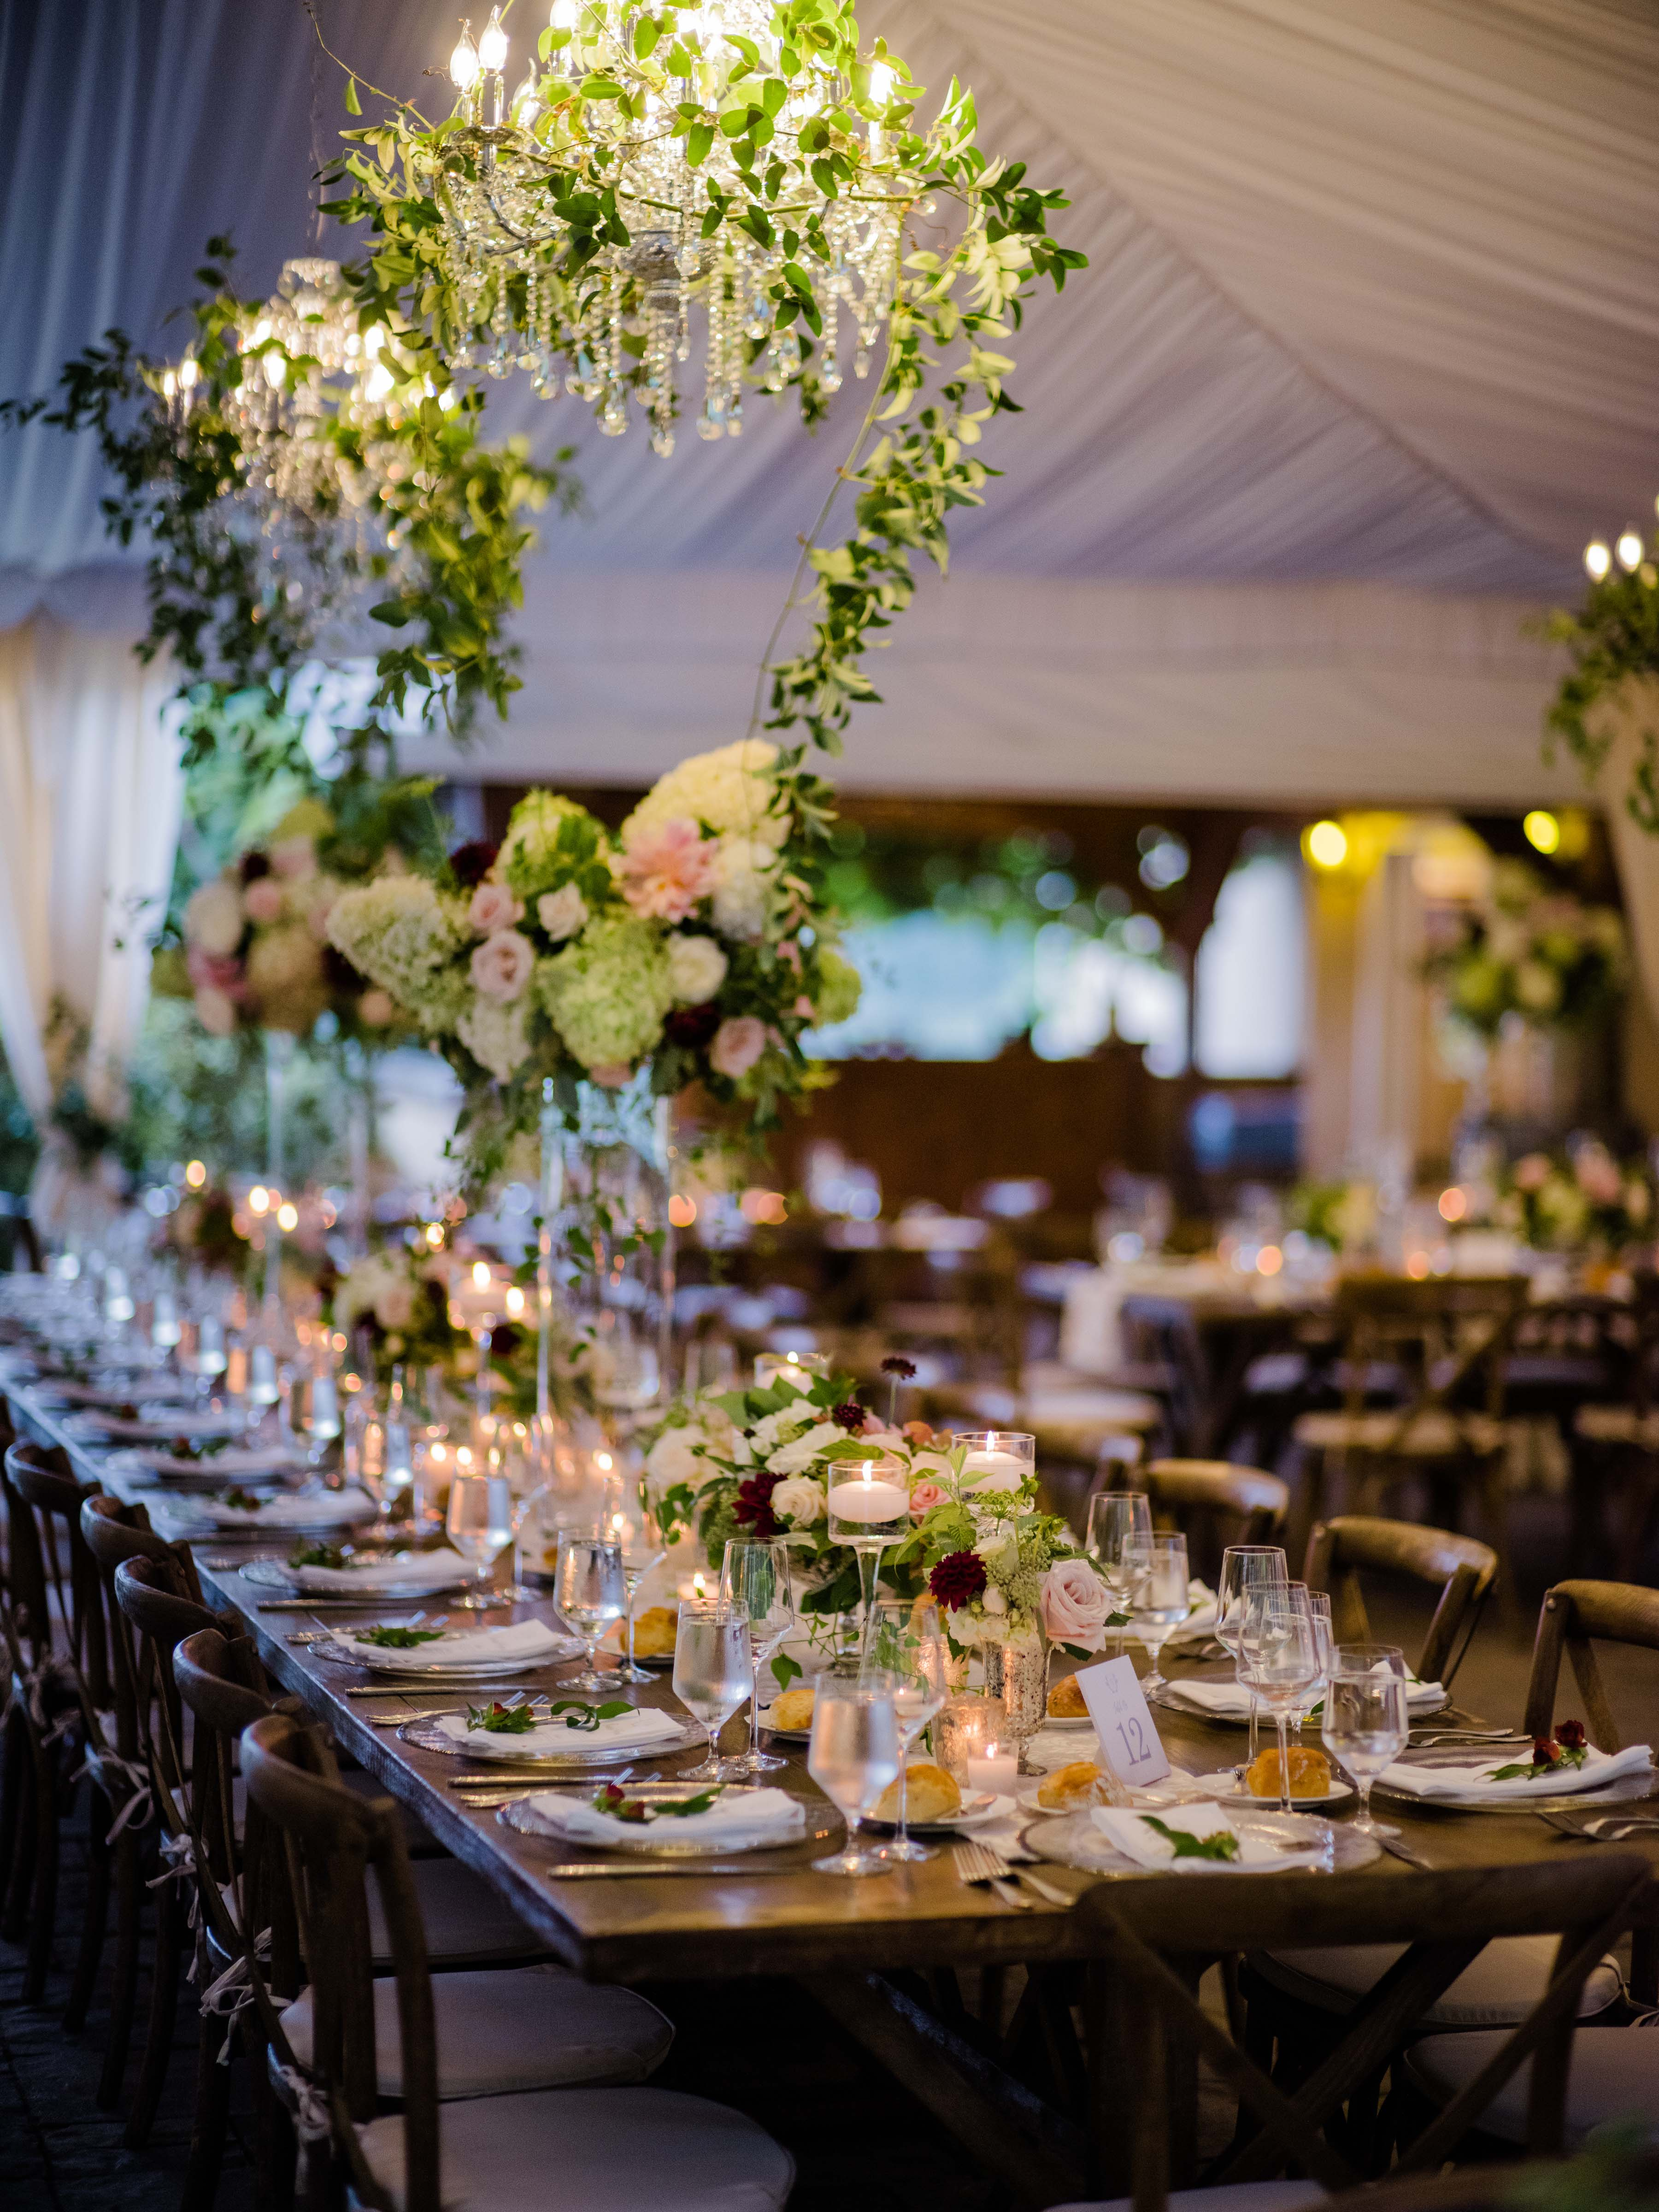 long wooden table with flower centerpieces